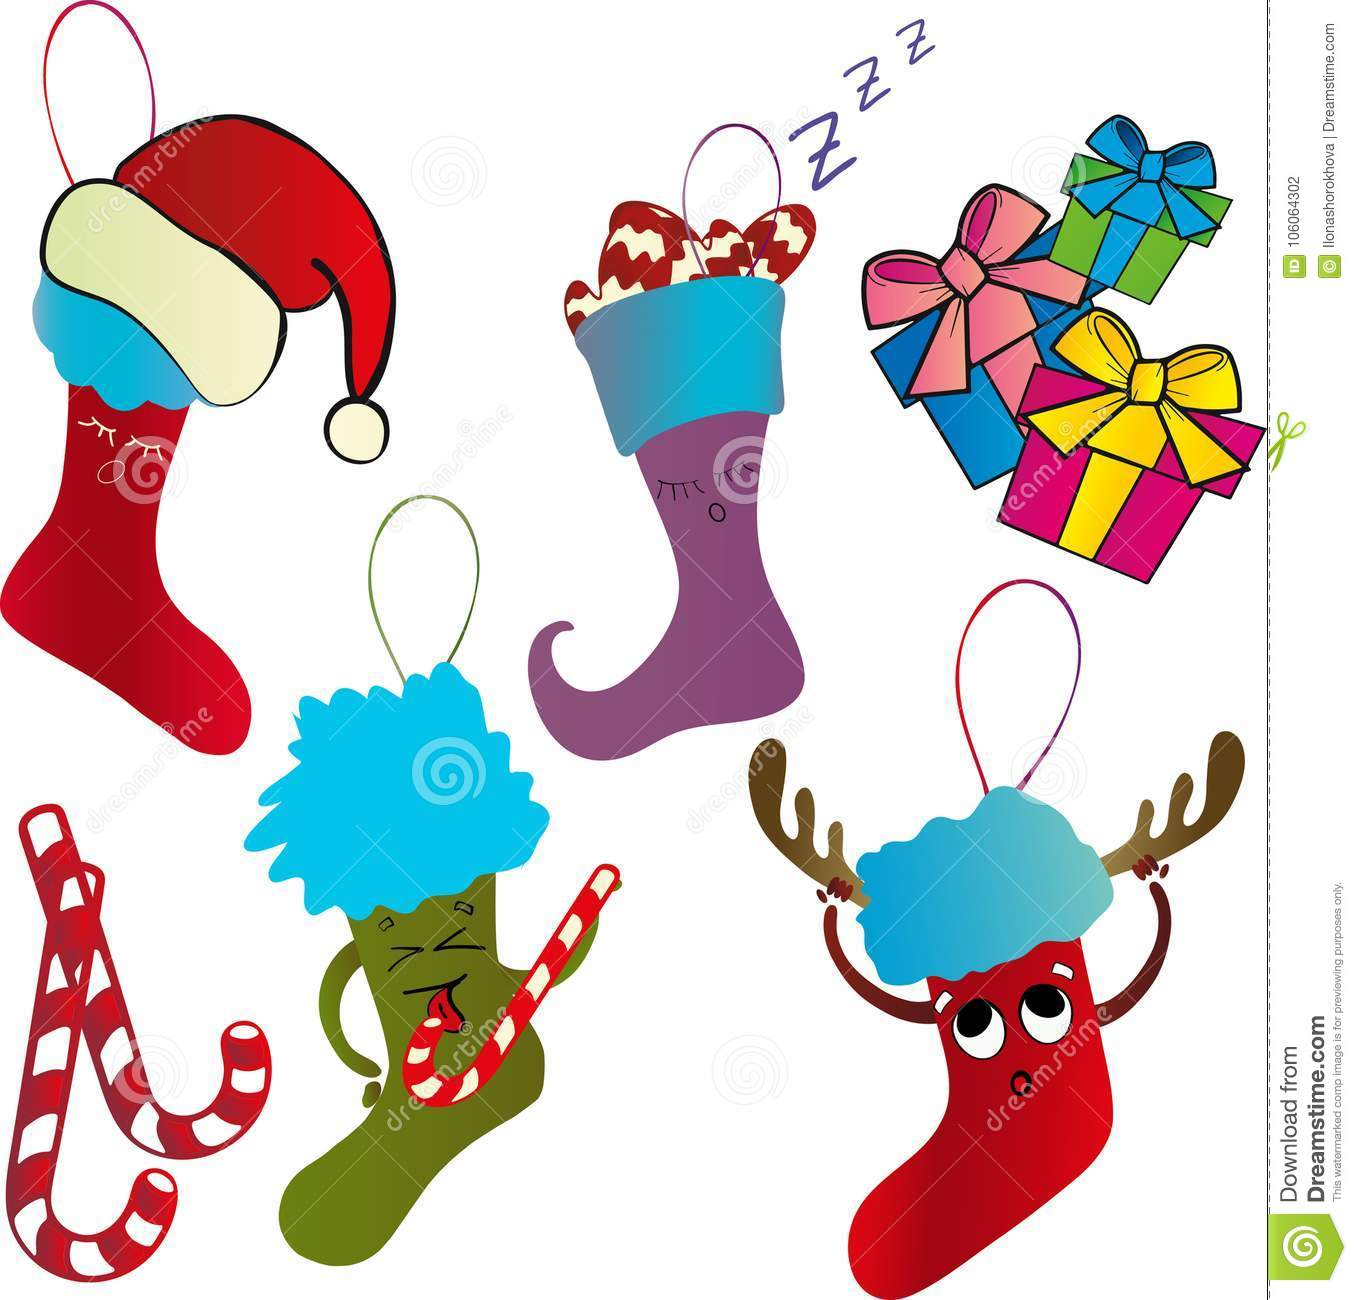 Christmas Stockings With Gifts Stock Illustration - Illustration of ...